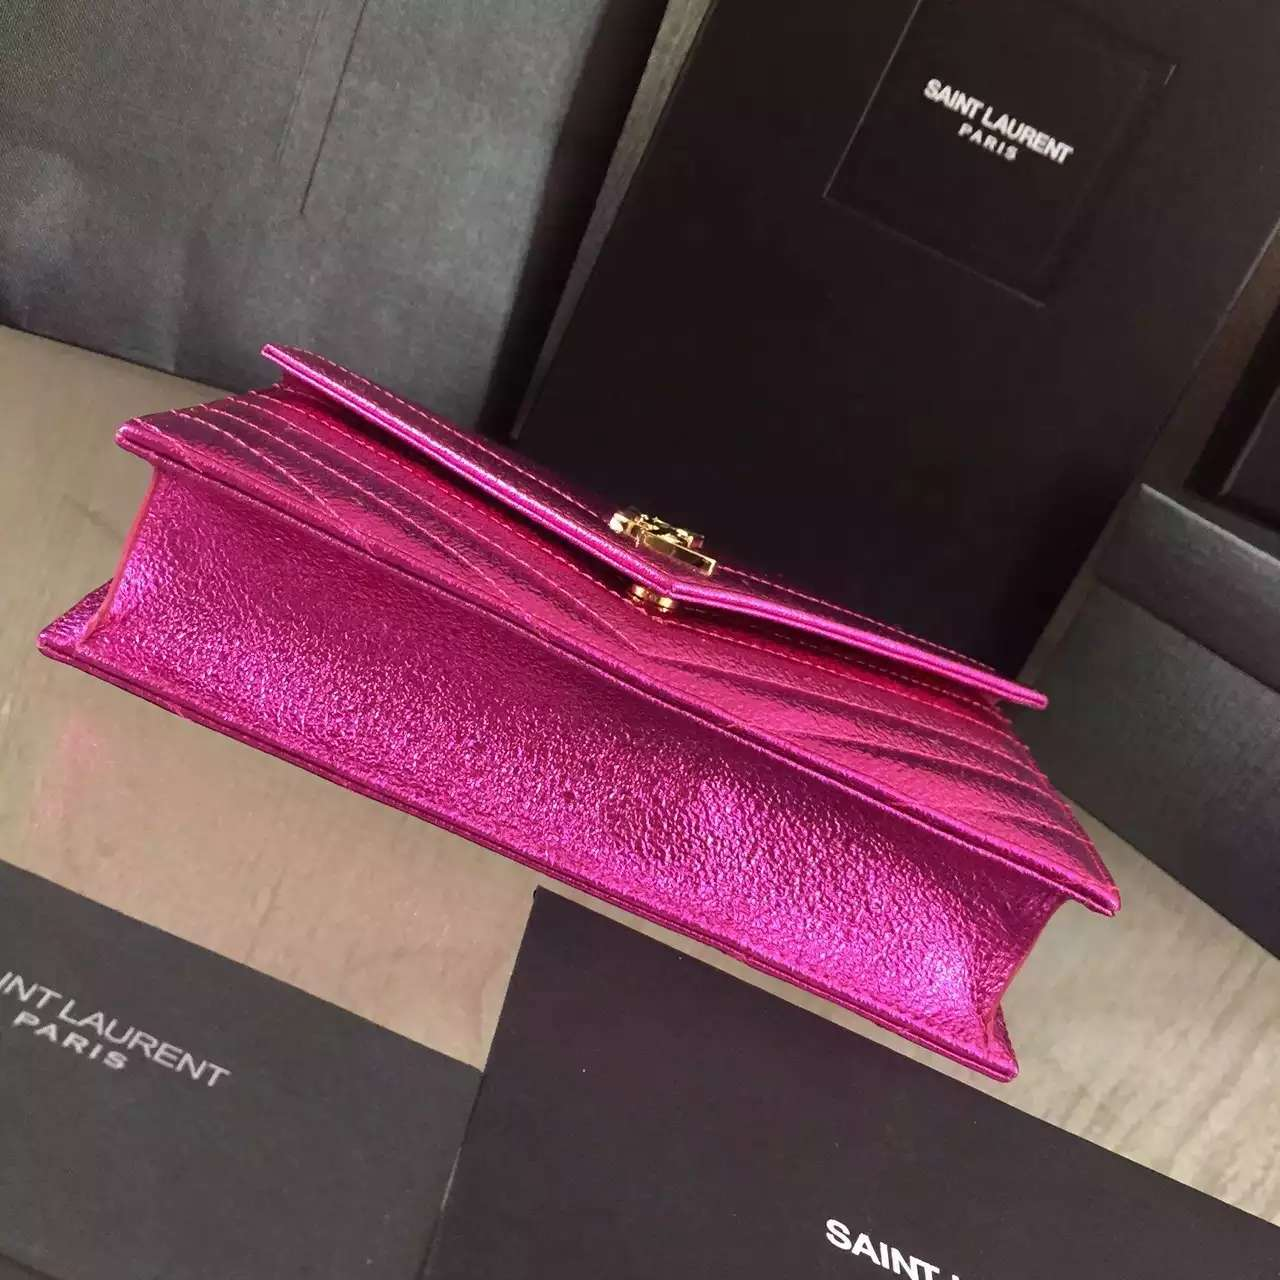 2016 Cheap YSL Out Sale with Free Shipping-Saint Laurent Monogram Envelope Chain Wallet in Rose Grained Matelasse Metallic Leather